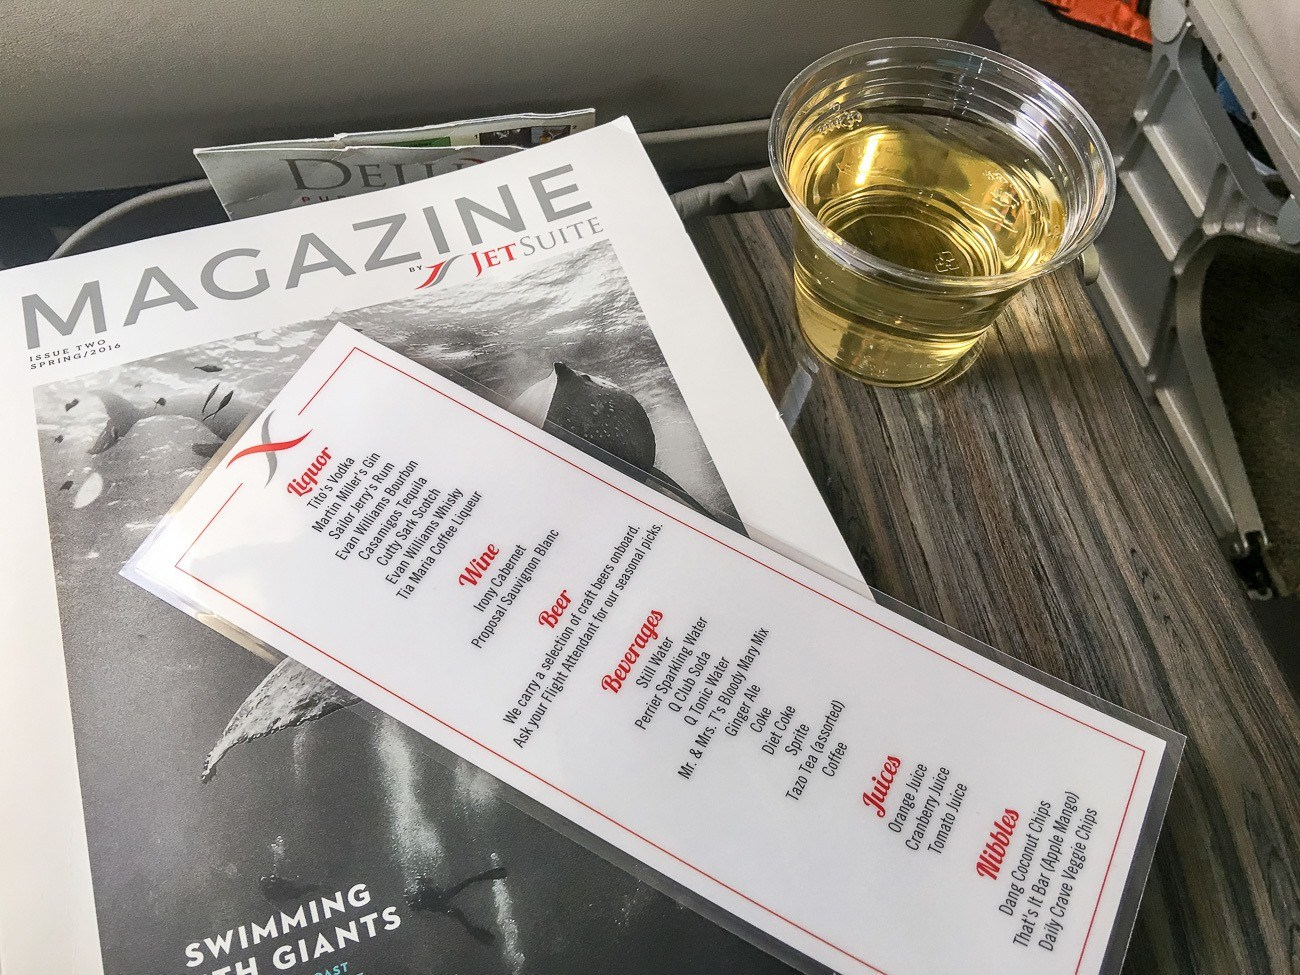 Passengers on JetSuiteX have a nice menu of premium wine and cocktails.